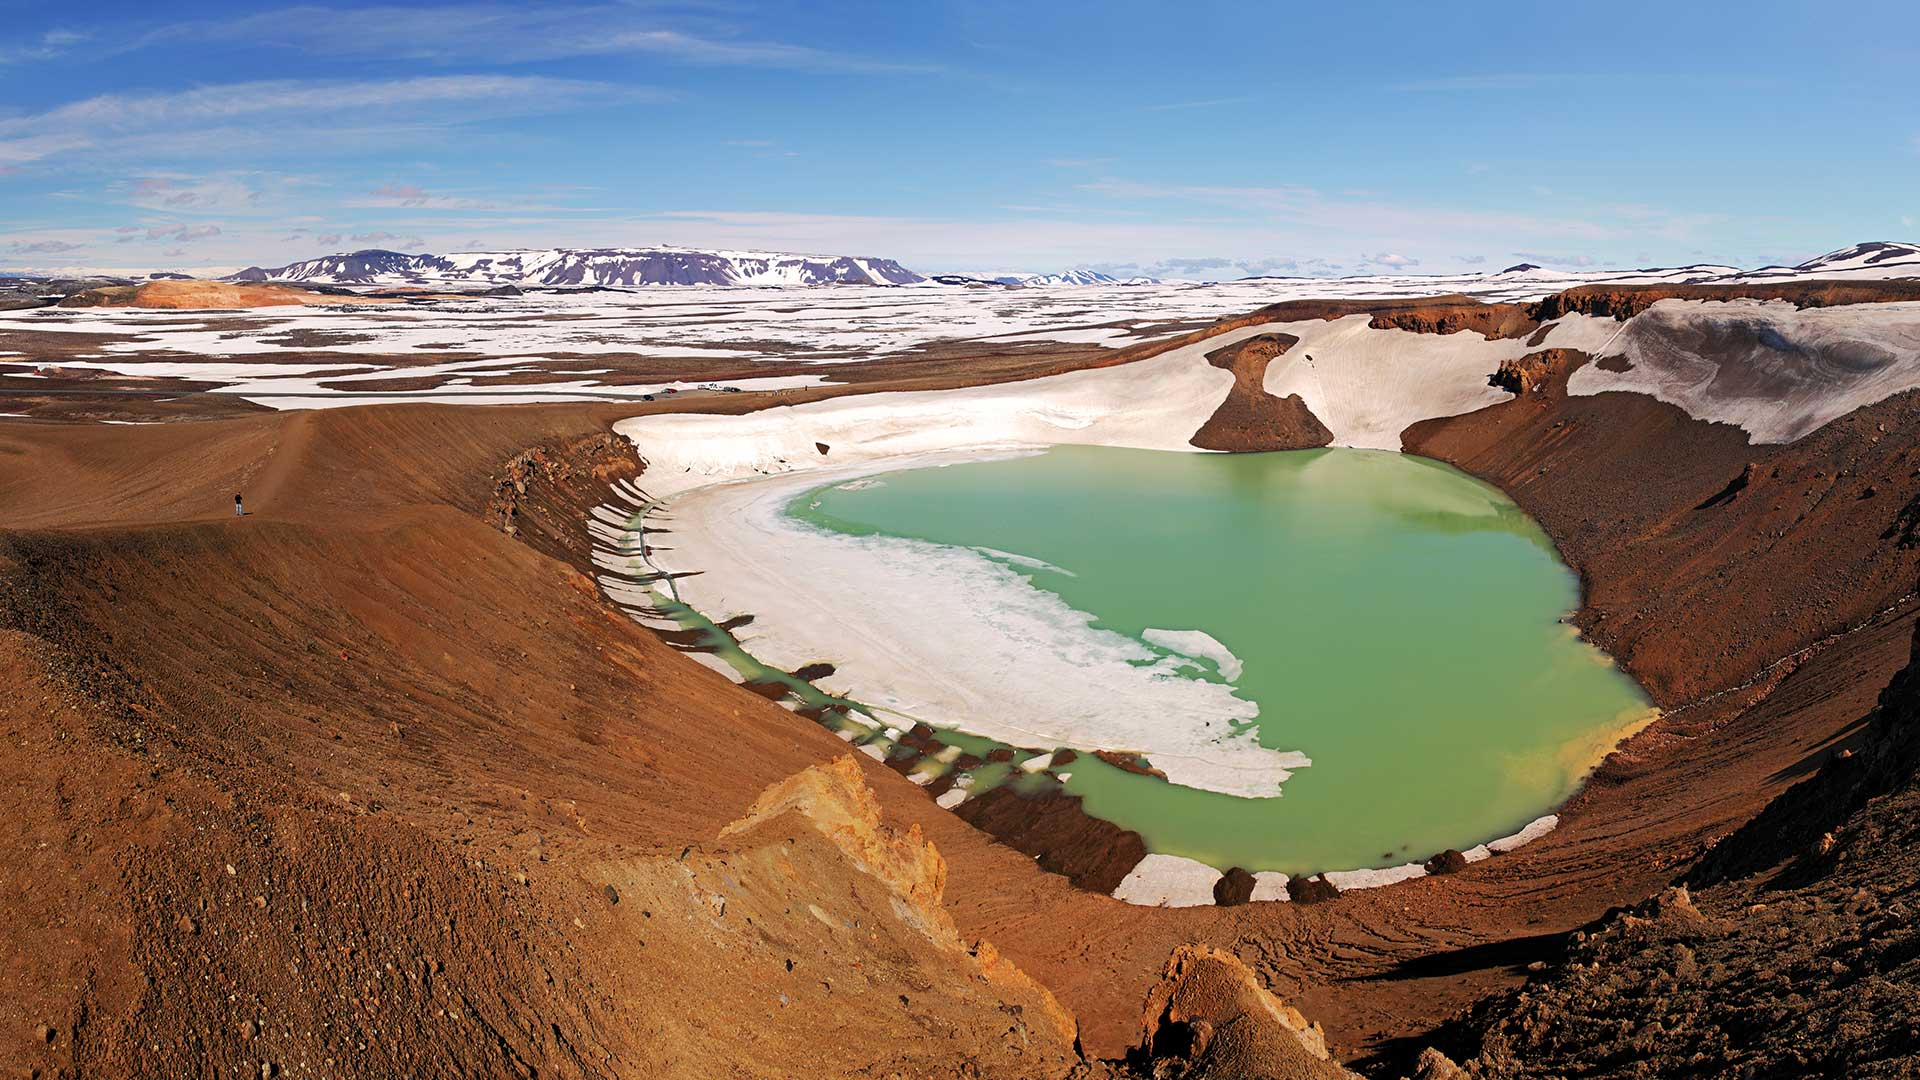 The Víti crater lake at Krafla in North Iceland